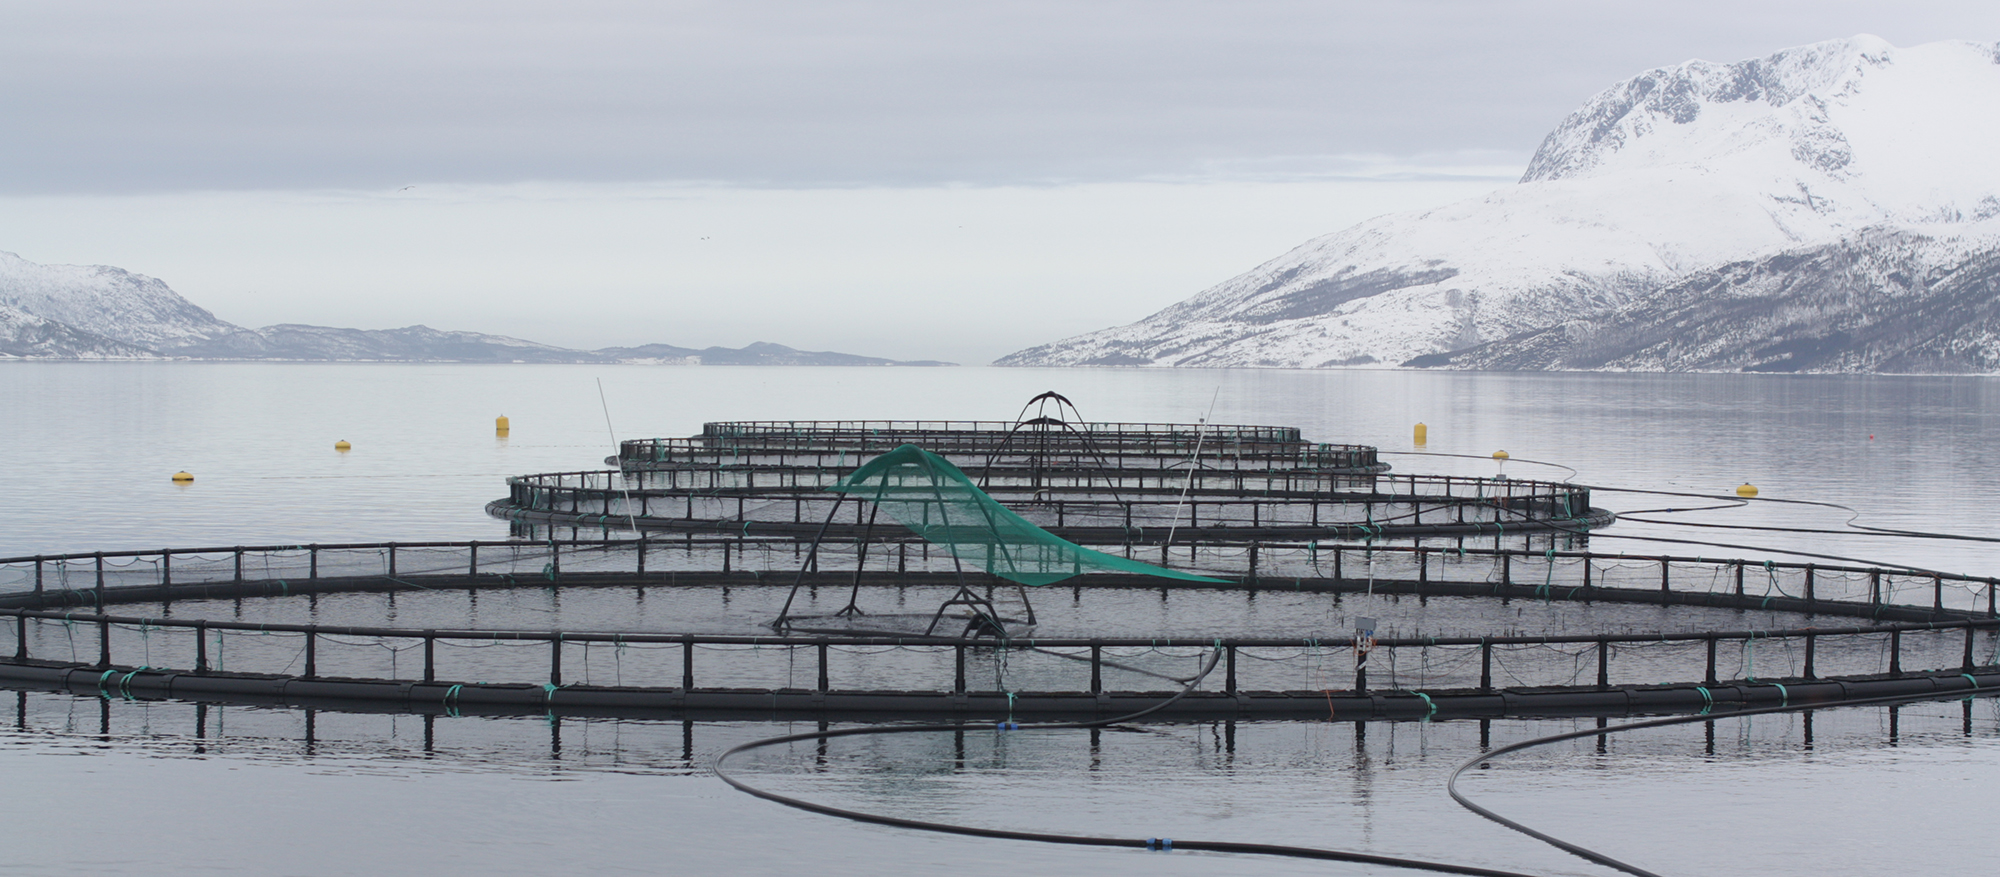 fish cages in a Norwegian fjord. https://commons.wikimedia.org/wiki/File%3AFish_cages.jpg